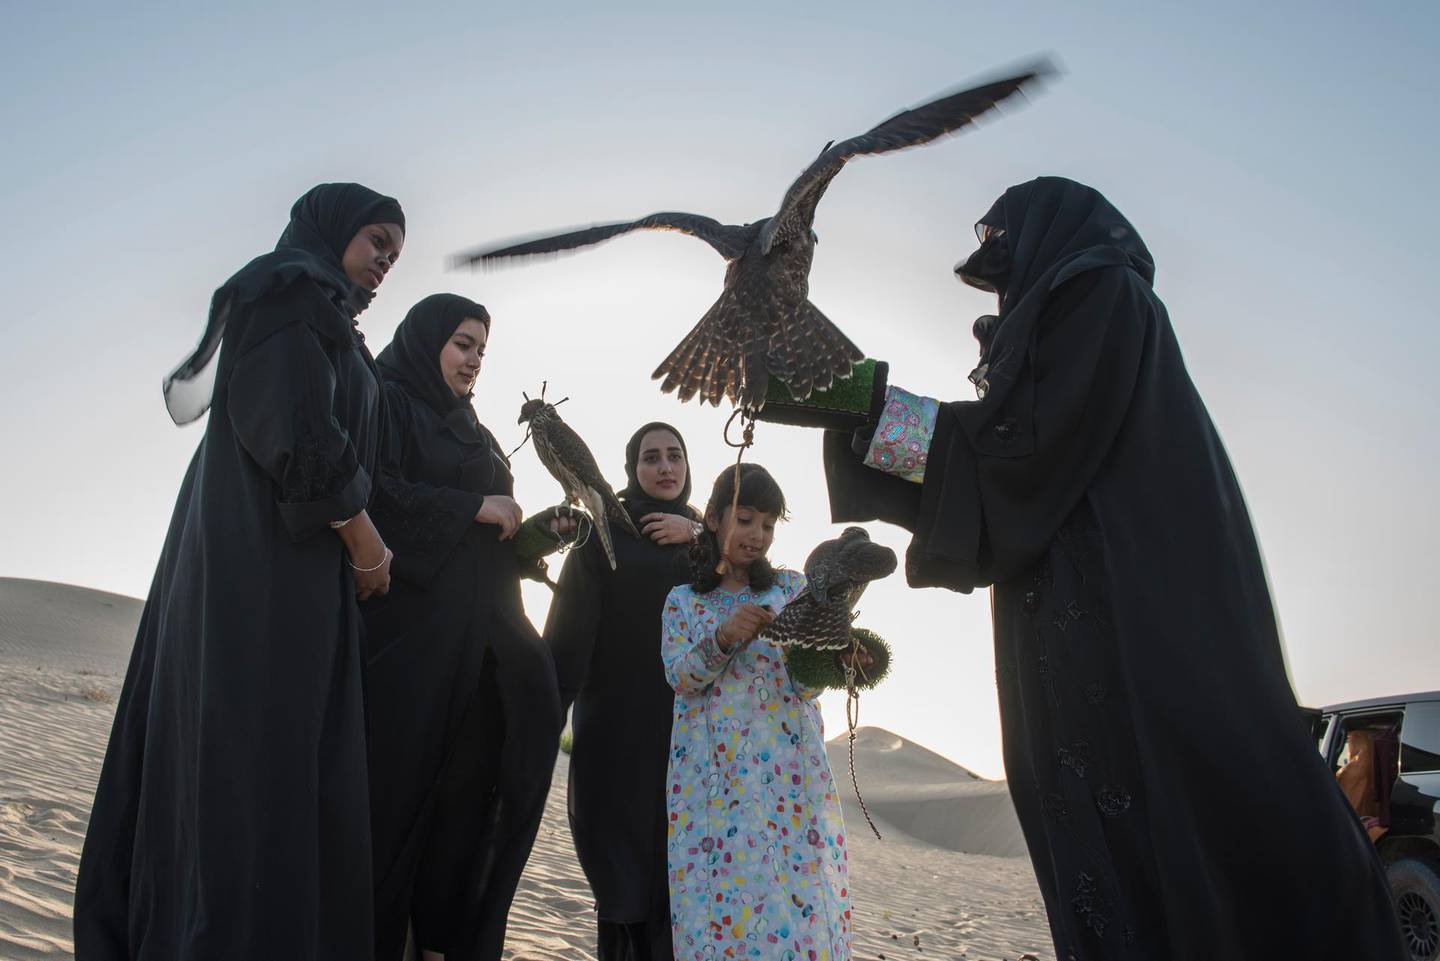 Emirati Women regularly come together in the evenings to meet and train their birds where the practice becomes more about friendship and sharing knowledge than subsistence. (From left to right) Mariam Al Hammadi, Emam Al Hammadi, Khawla Al Hammadi, Osha Khaleefa Al Mansoori, Ayesha Al Manoori head trainer for the female section in Abu Dhabi Falcon Club, a government-owned organization which promotes falconry in UAE.Vidhyaa for The National